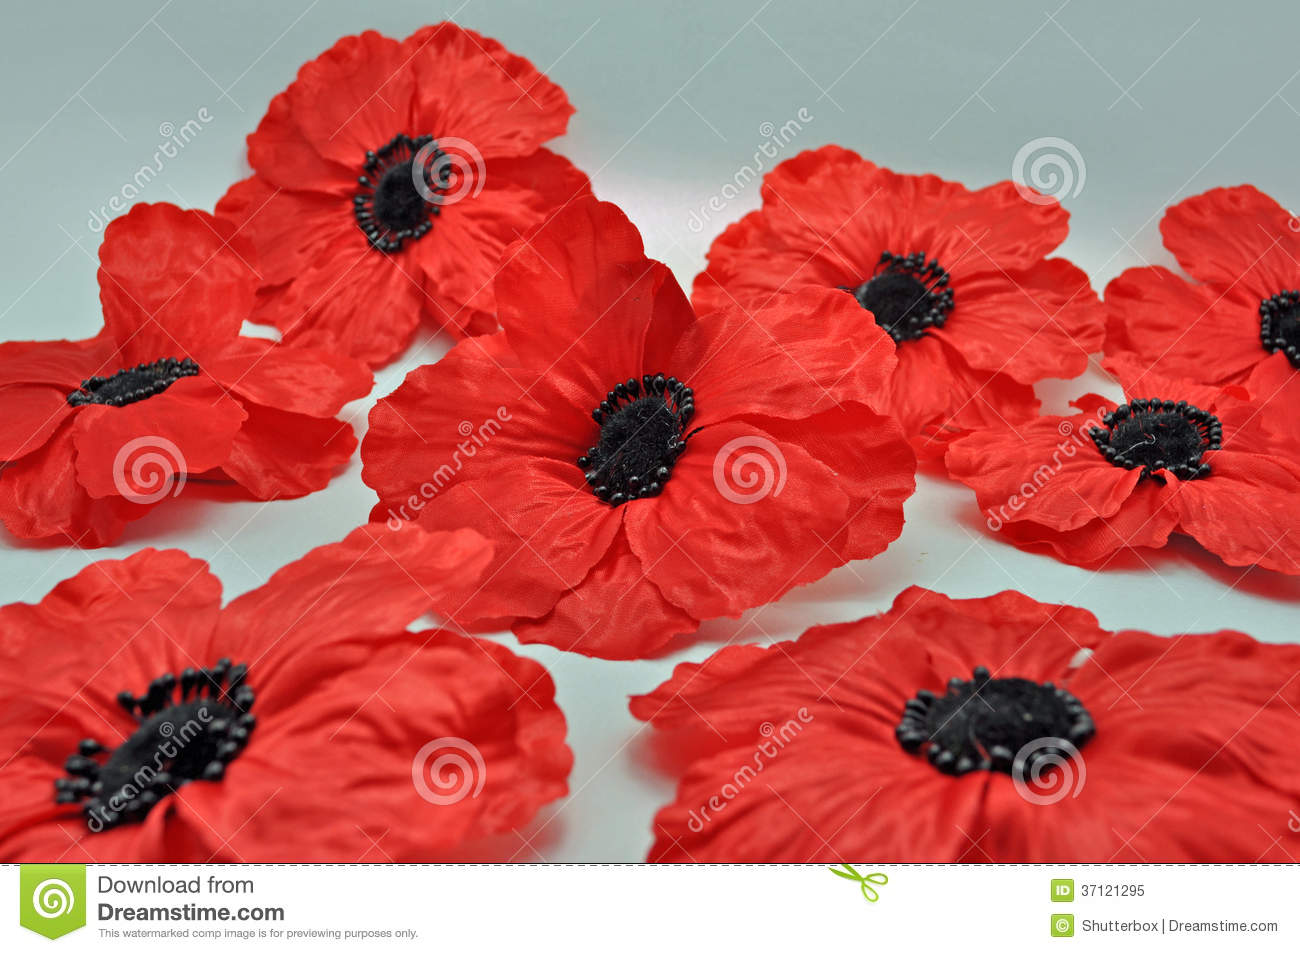 Group Of Red Poppy Brooch Jewellery Stock Image - Image of luxury